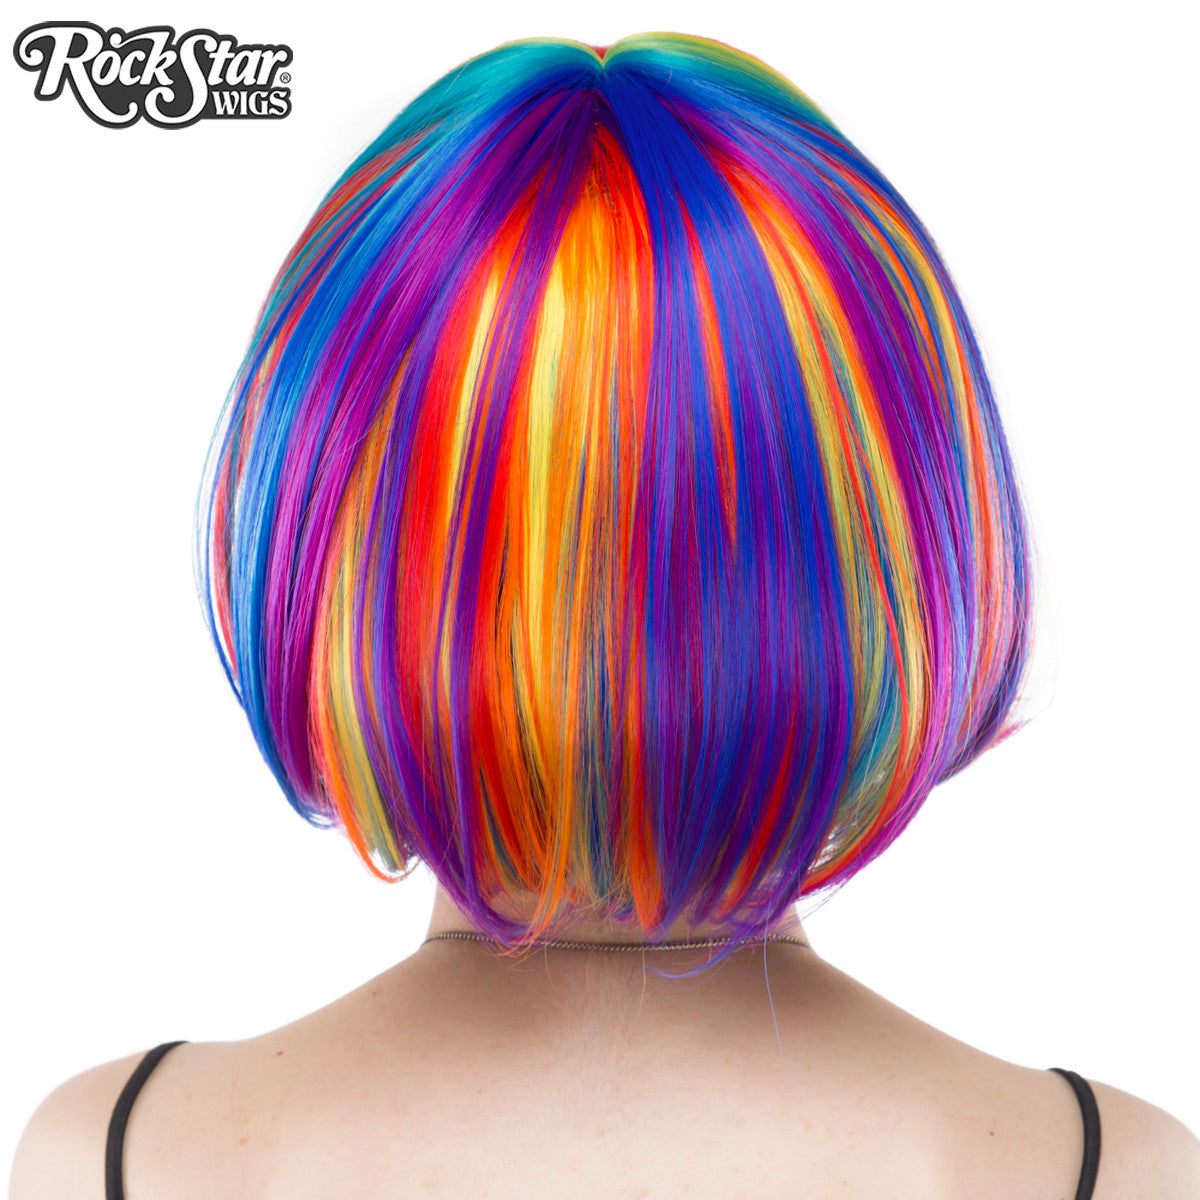 RockStar Wigs® <br> Rainbow Rock™ Collection - Rainbow Bob -00220